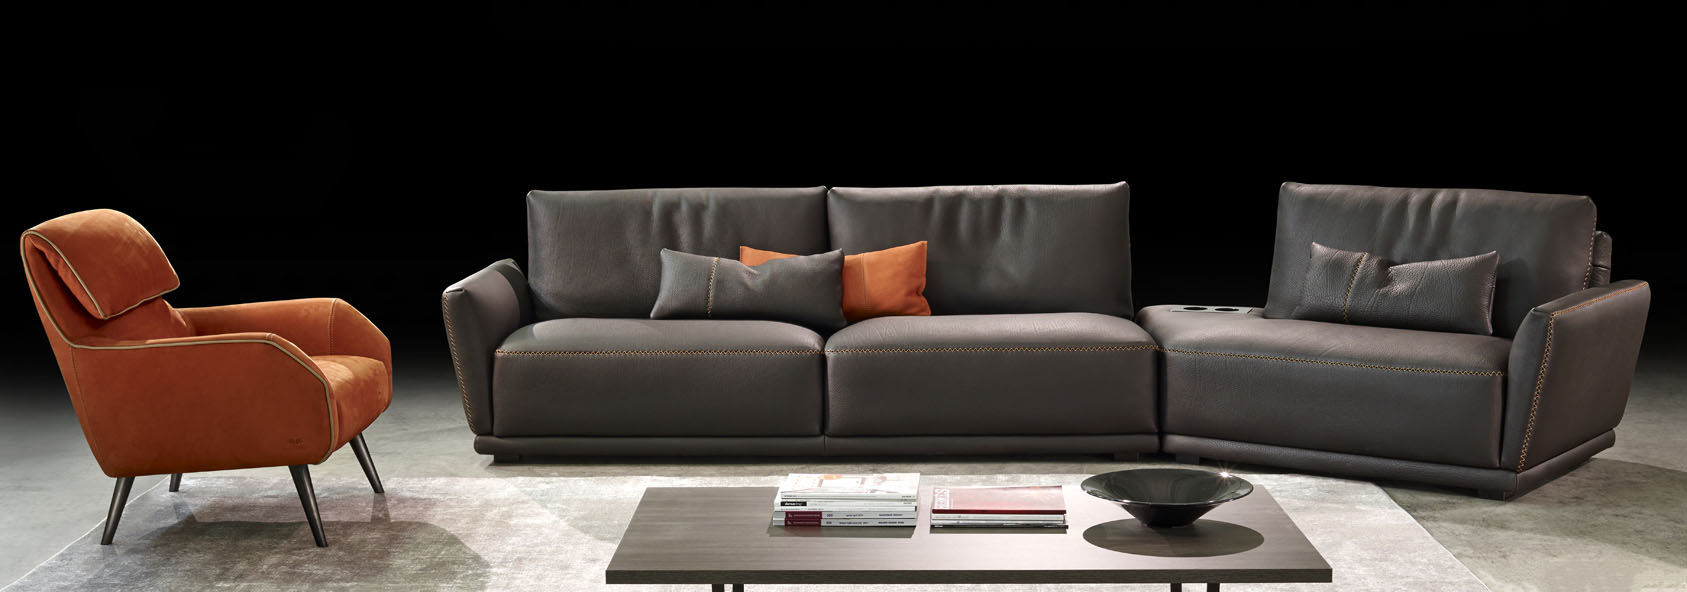 inspirational high back sectional sofas collection-Latest High Back Sectional sofas Décor